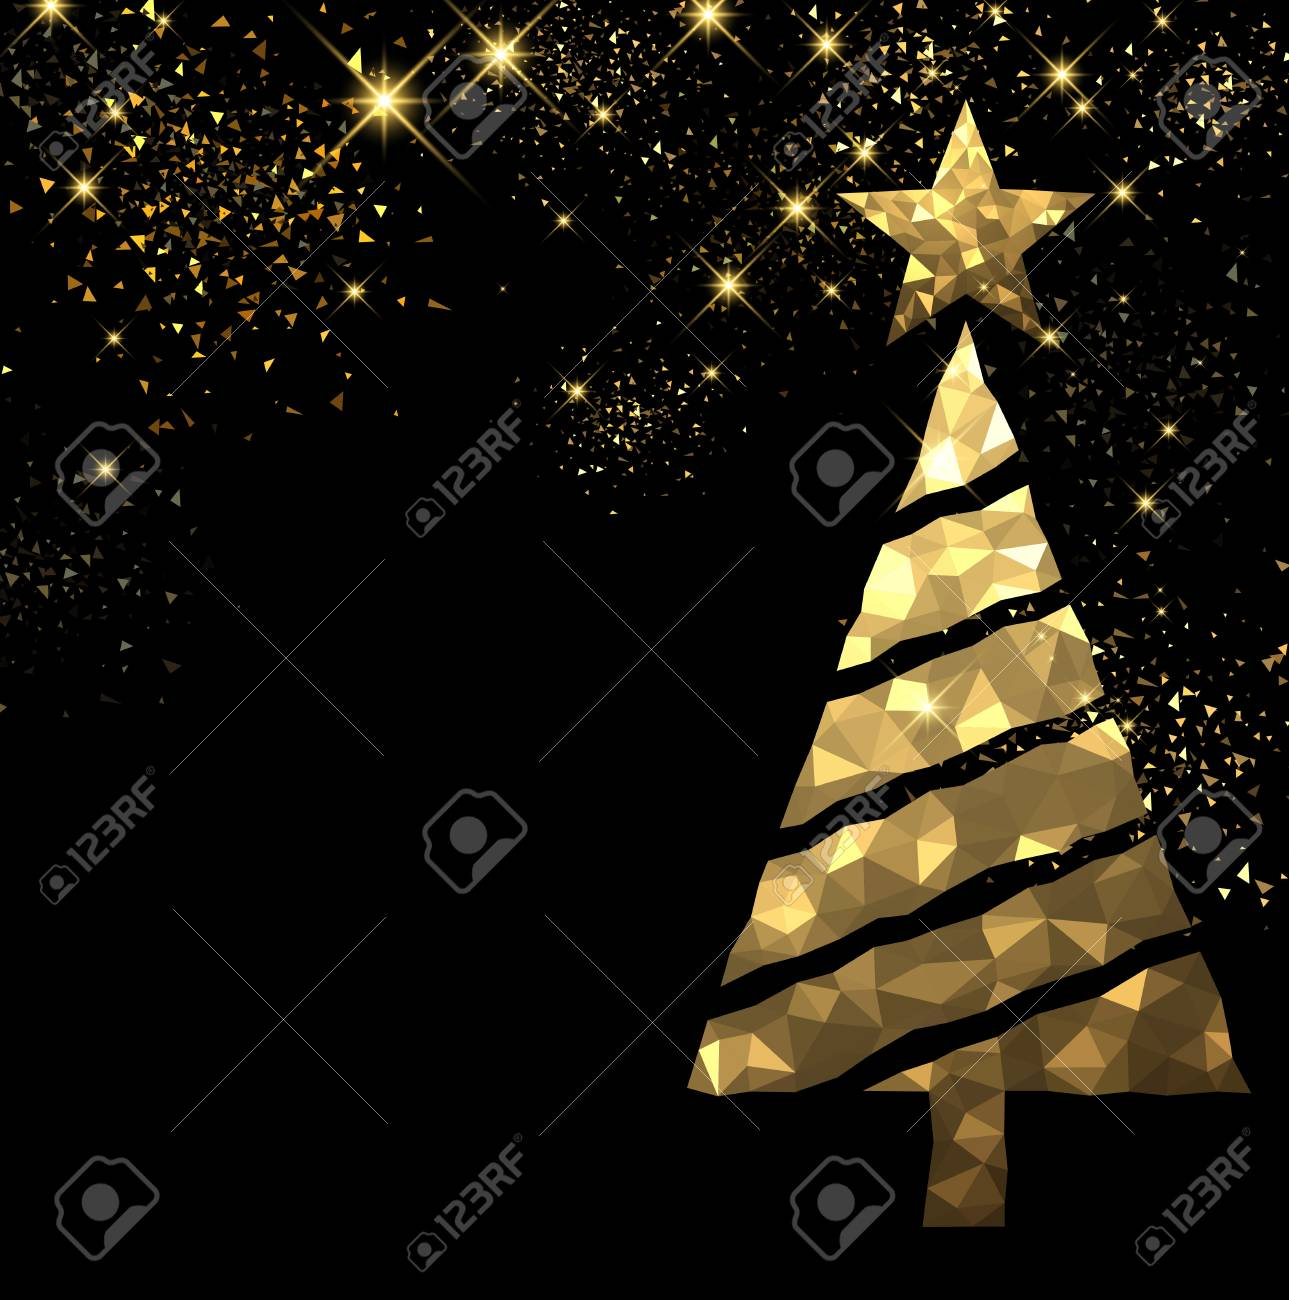 new year black background with golden christmas tree vector illustration stock vector 64711243